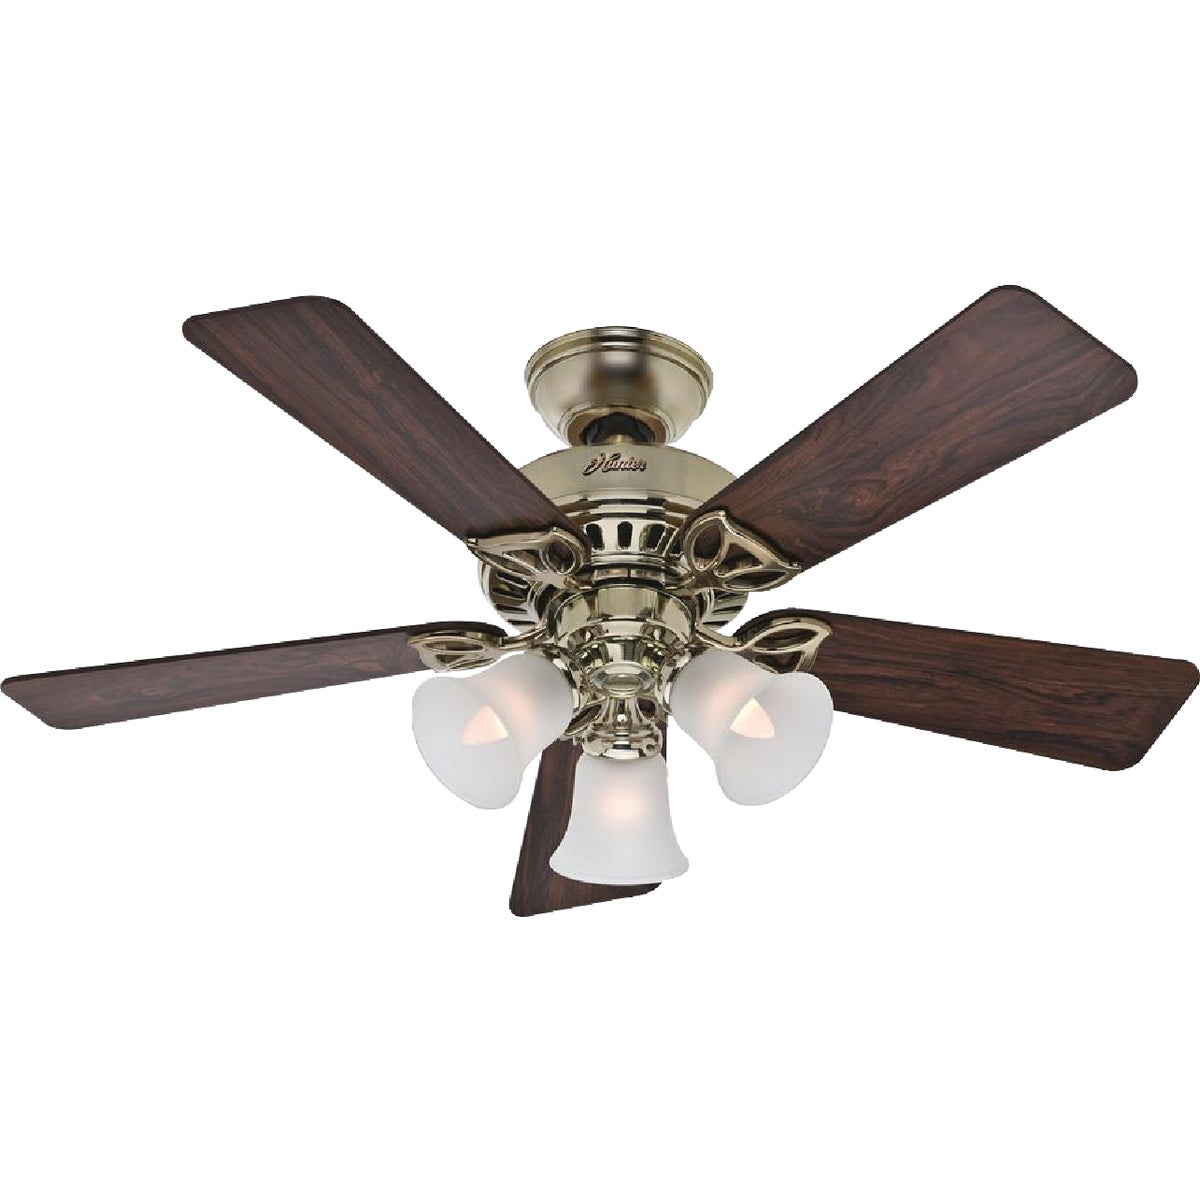 "42"" BB CEIL FAN W/LIGHT"